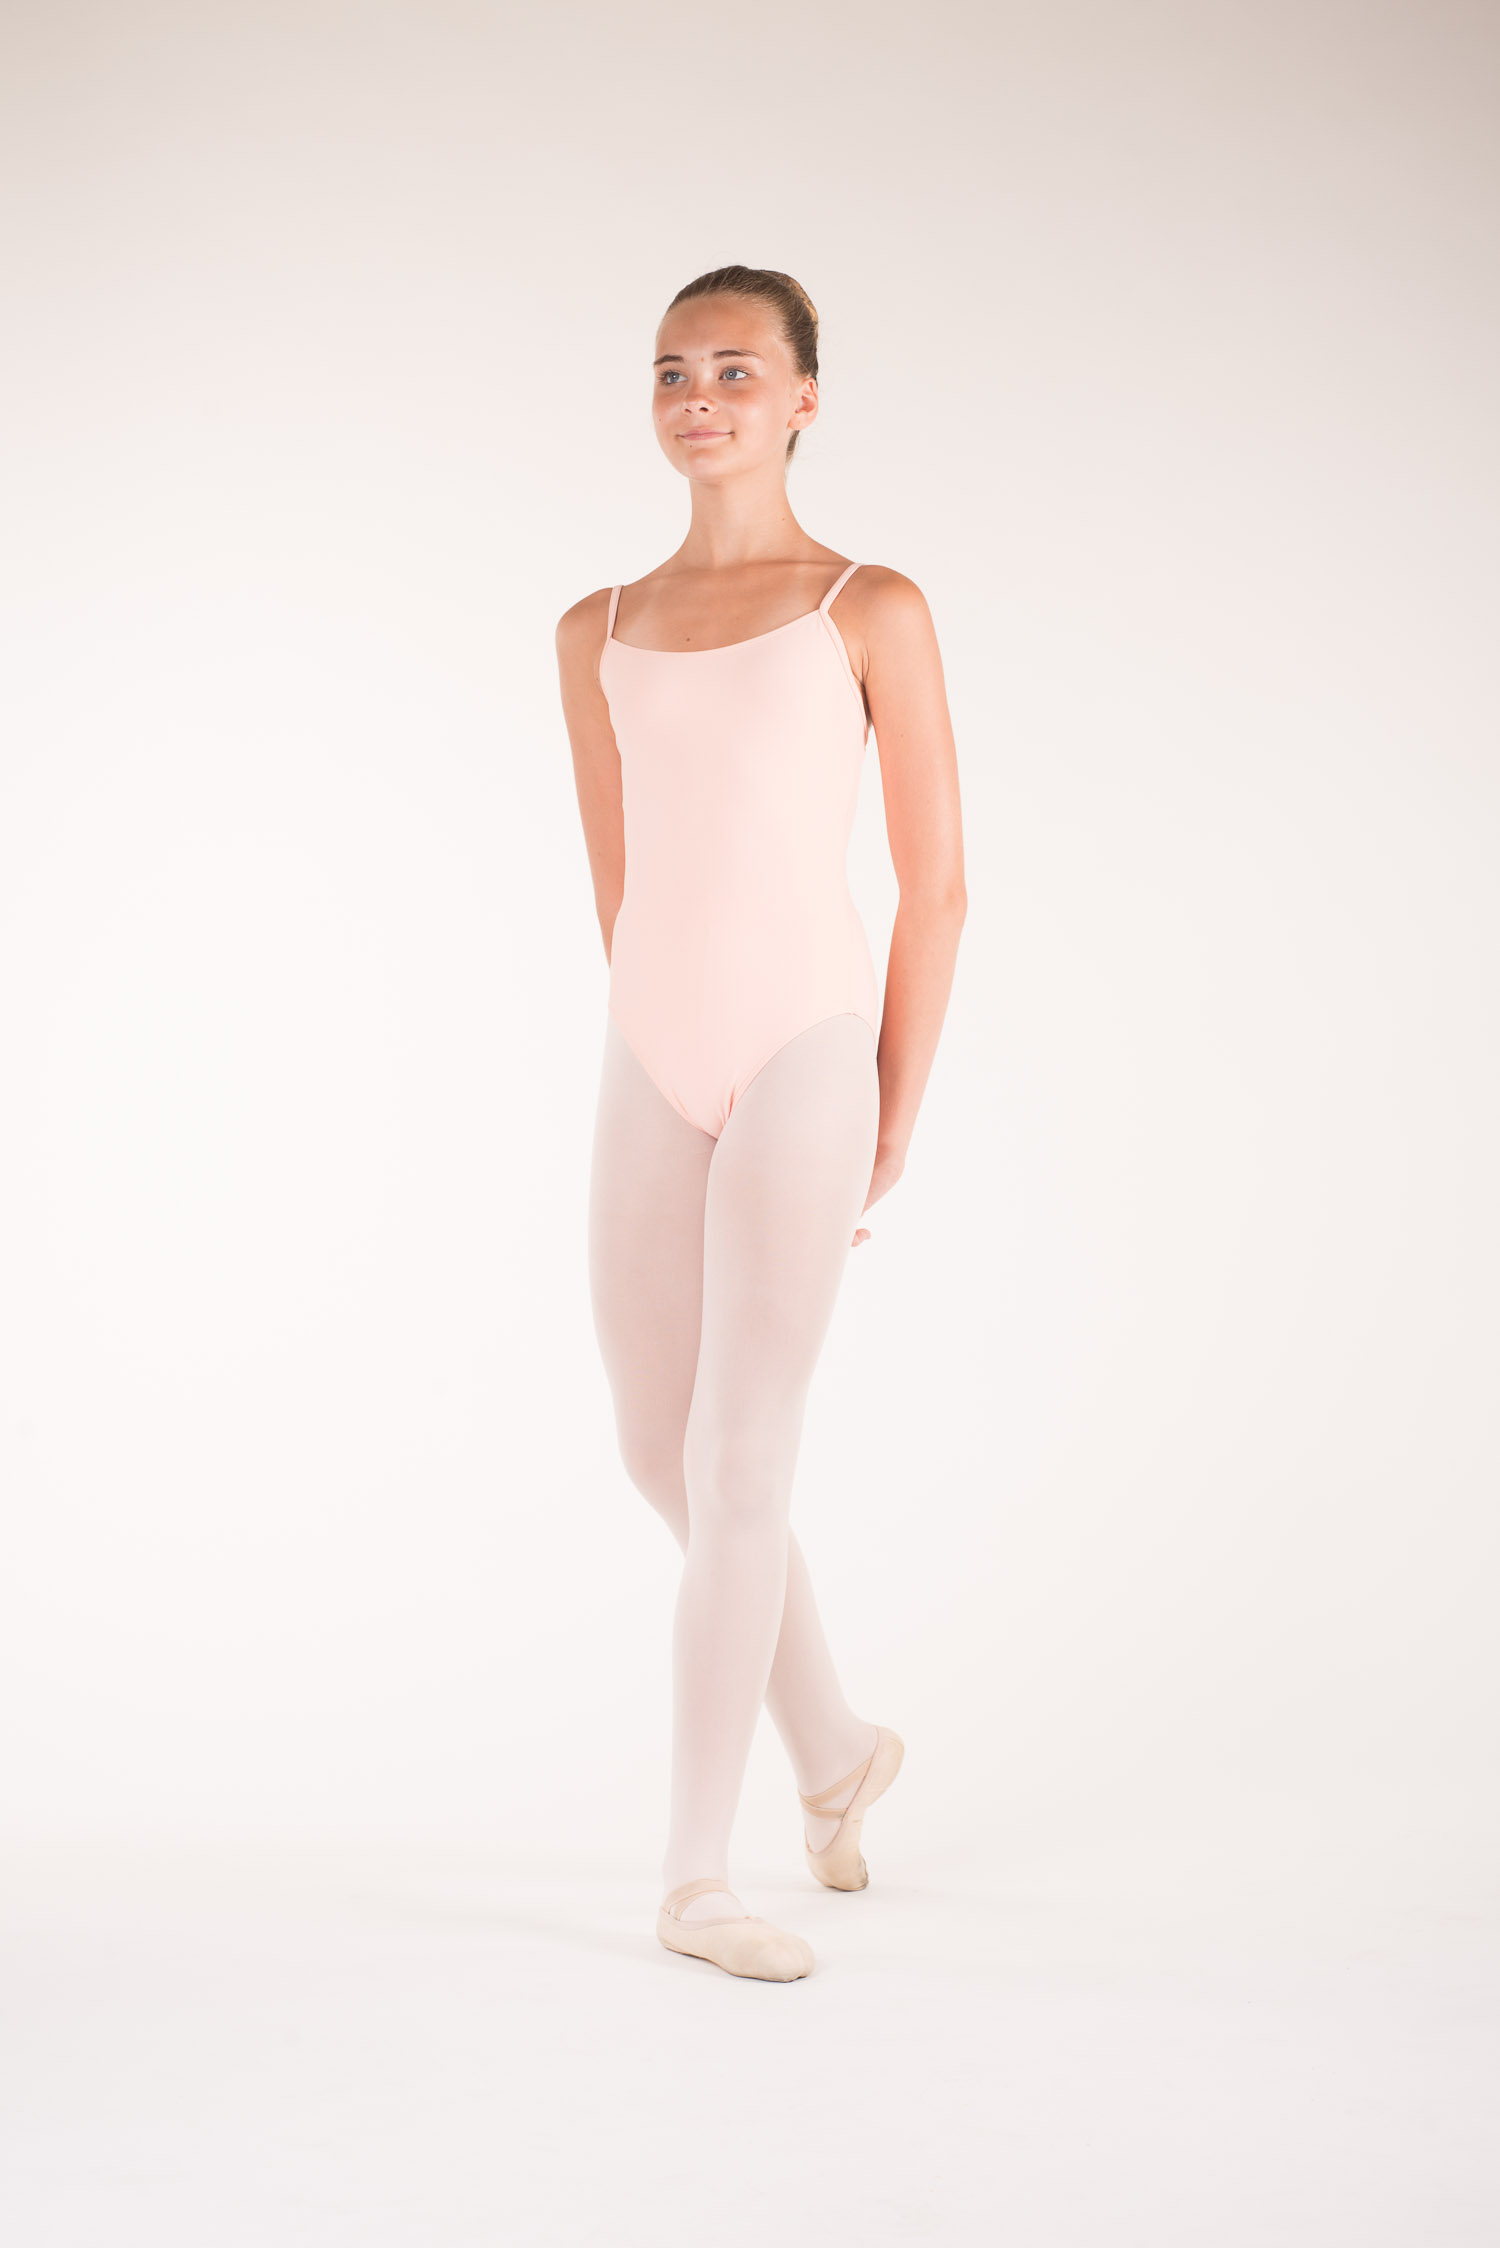 92ddd2c9ceab undefeated x 05cf6 323a8 for young girls and young dancerswear moi ...